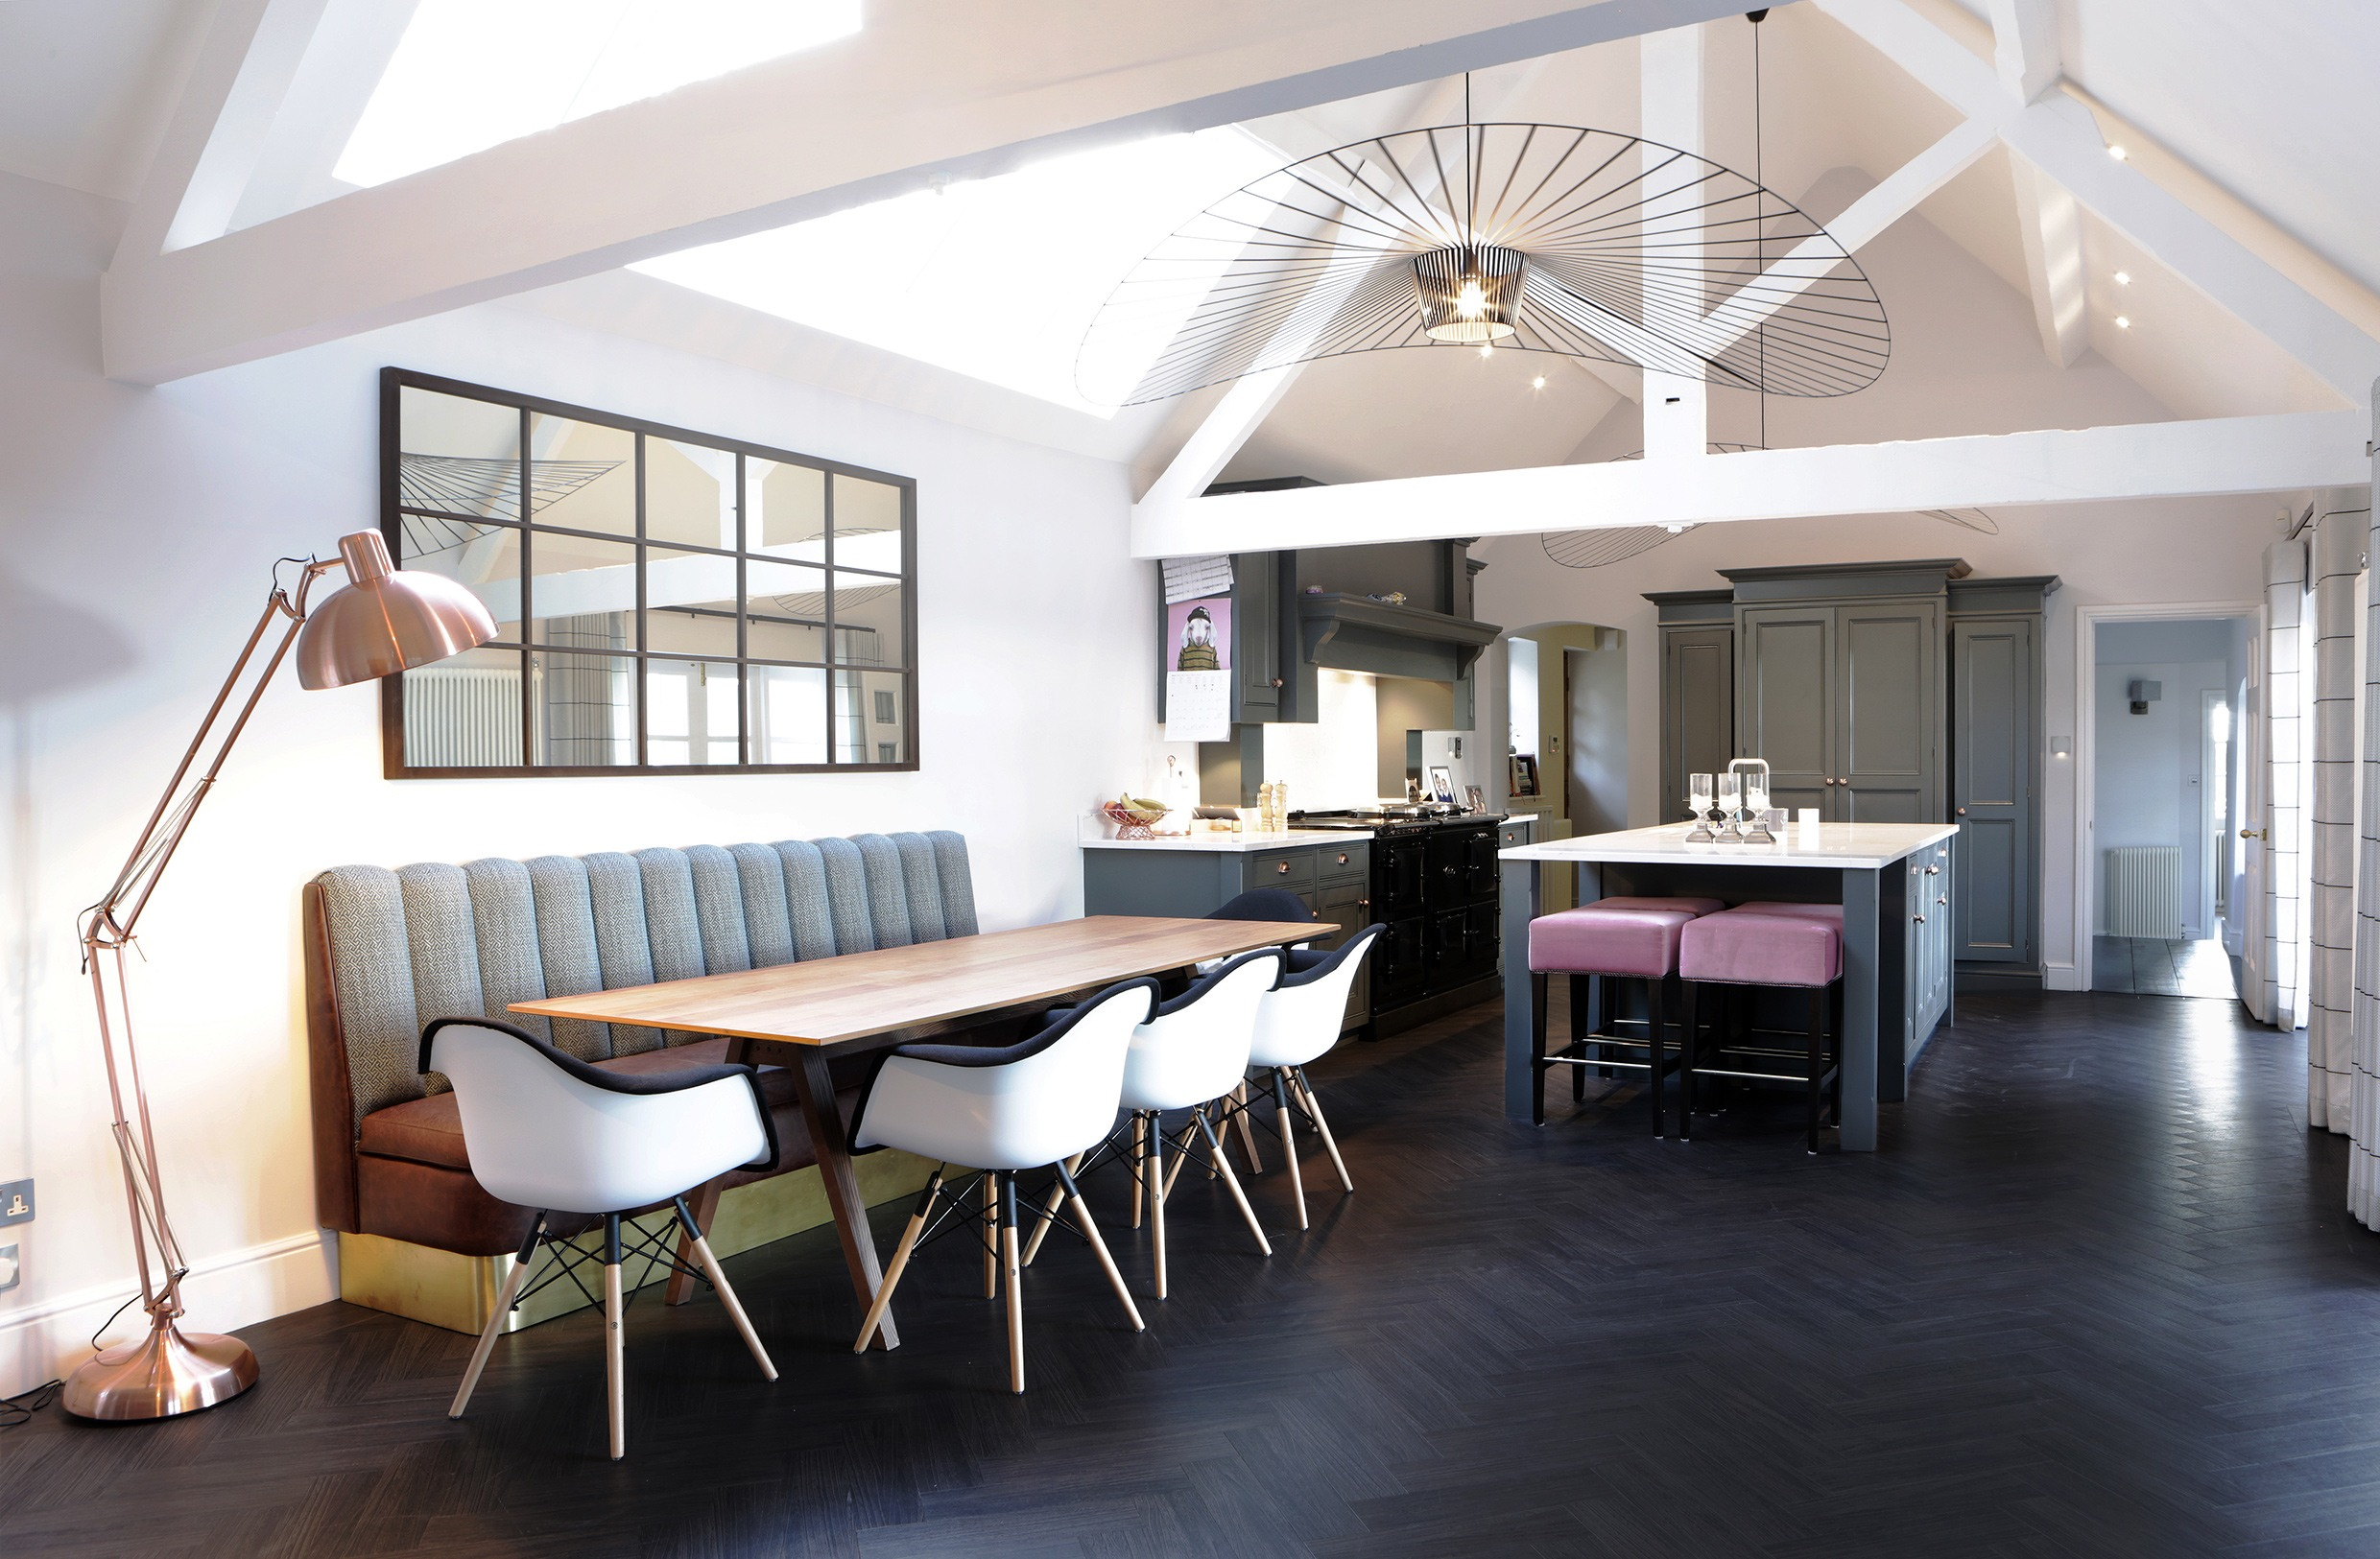 Peter Staunton Interior Design - Parkers Barn Farm Kitchen Leamington Spa Warwickshire